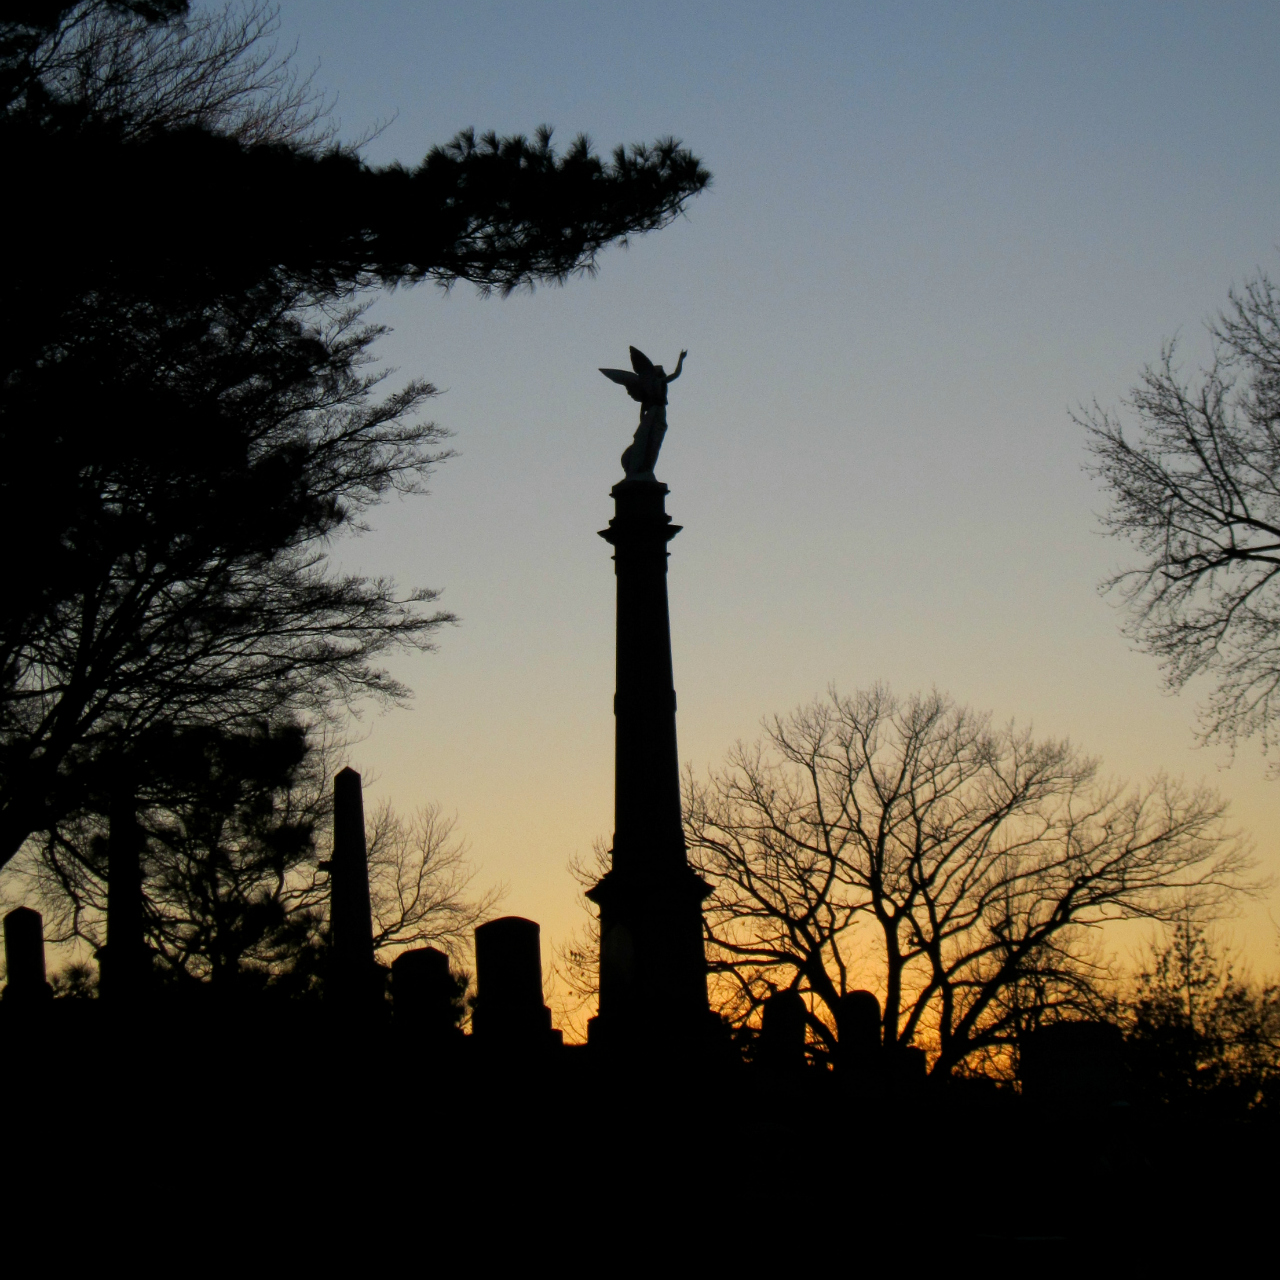 Sunset at Green-Wood Cemetery, Brooklyn (photograph by the author)